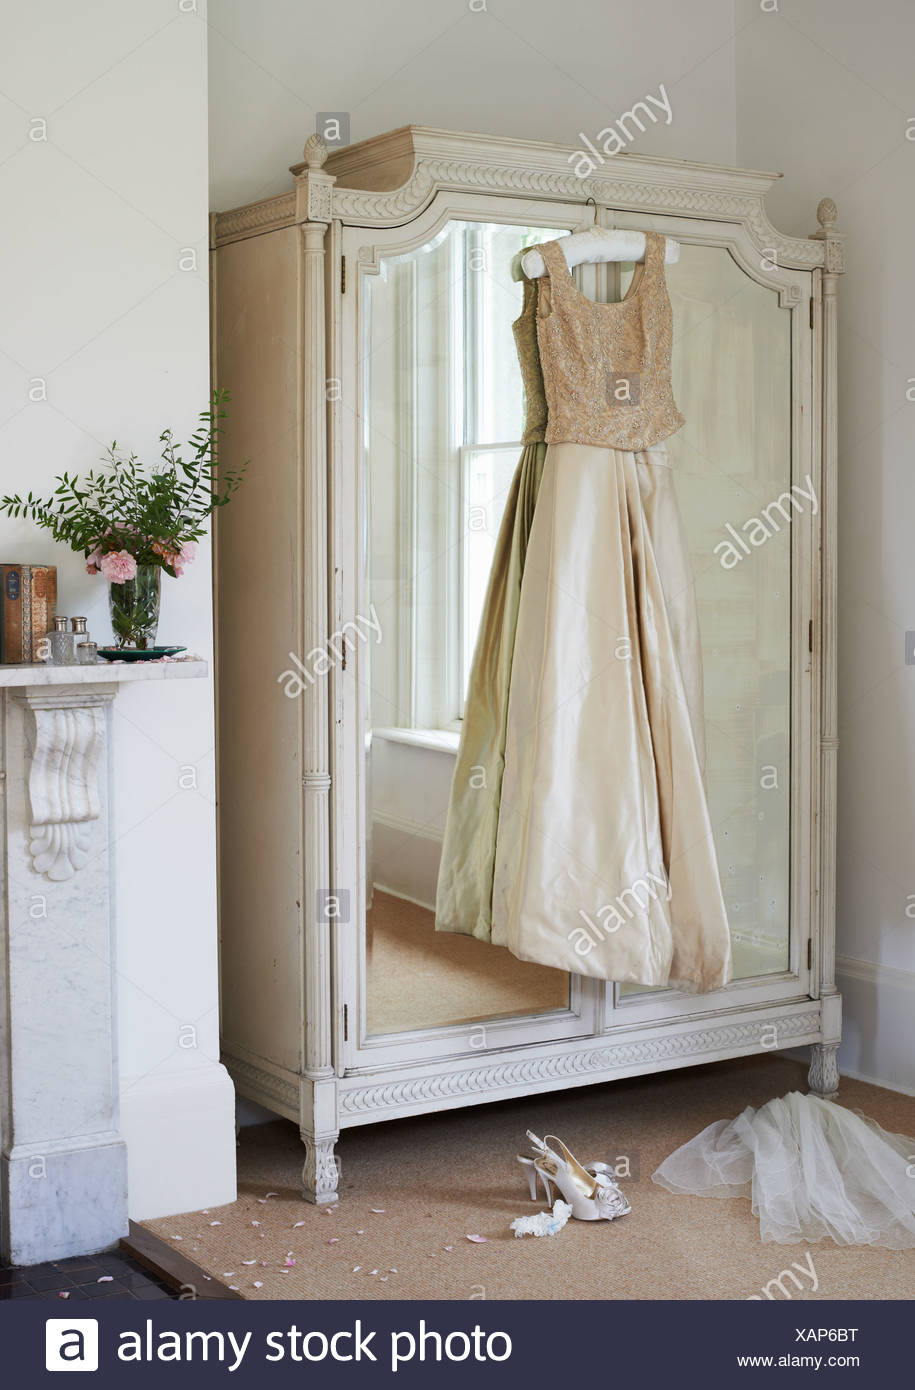 Wedding gown hanging from wardrobe - Stock Image